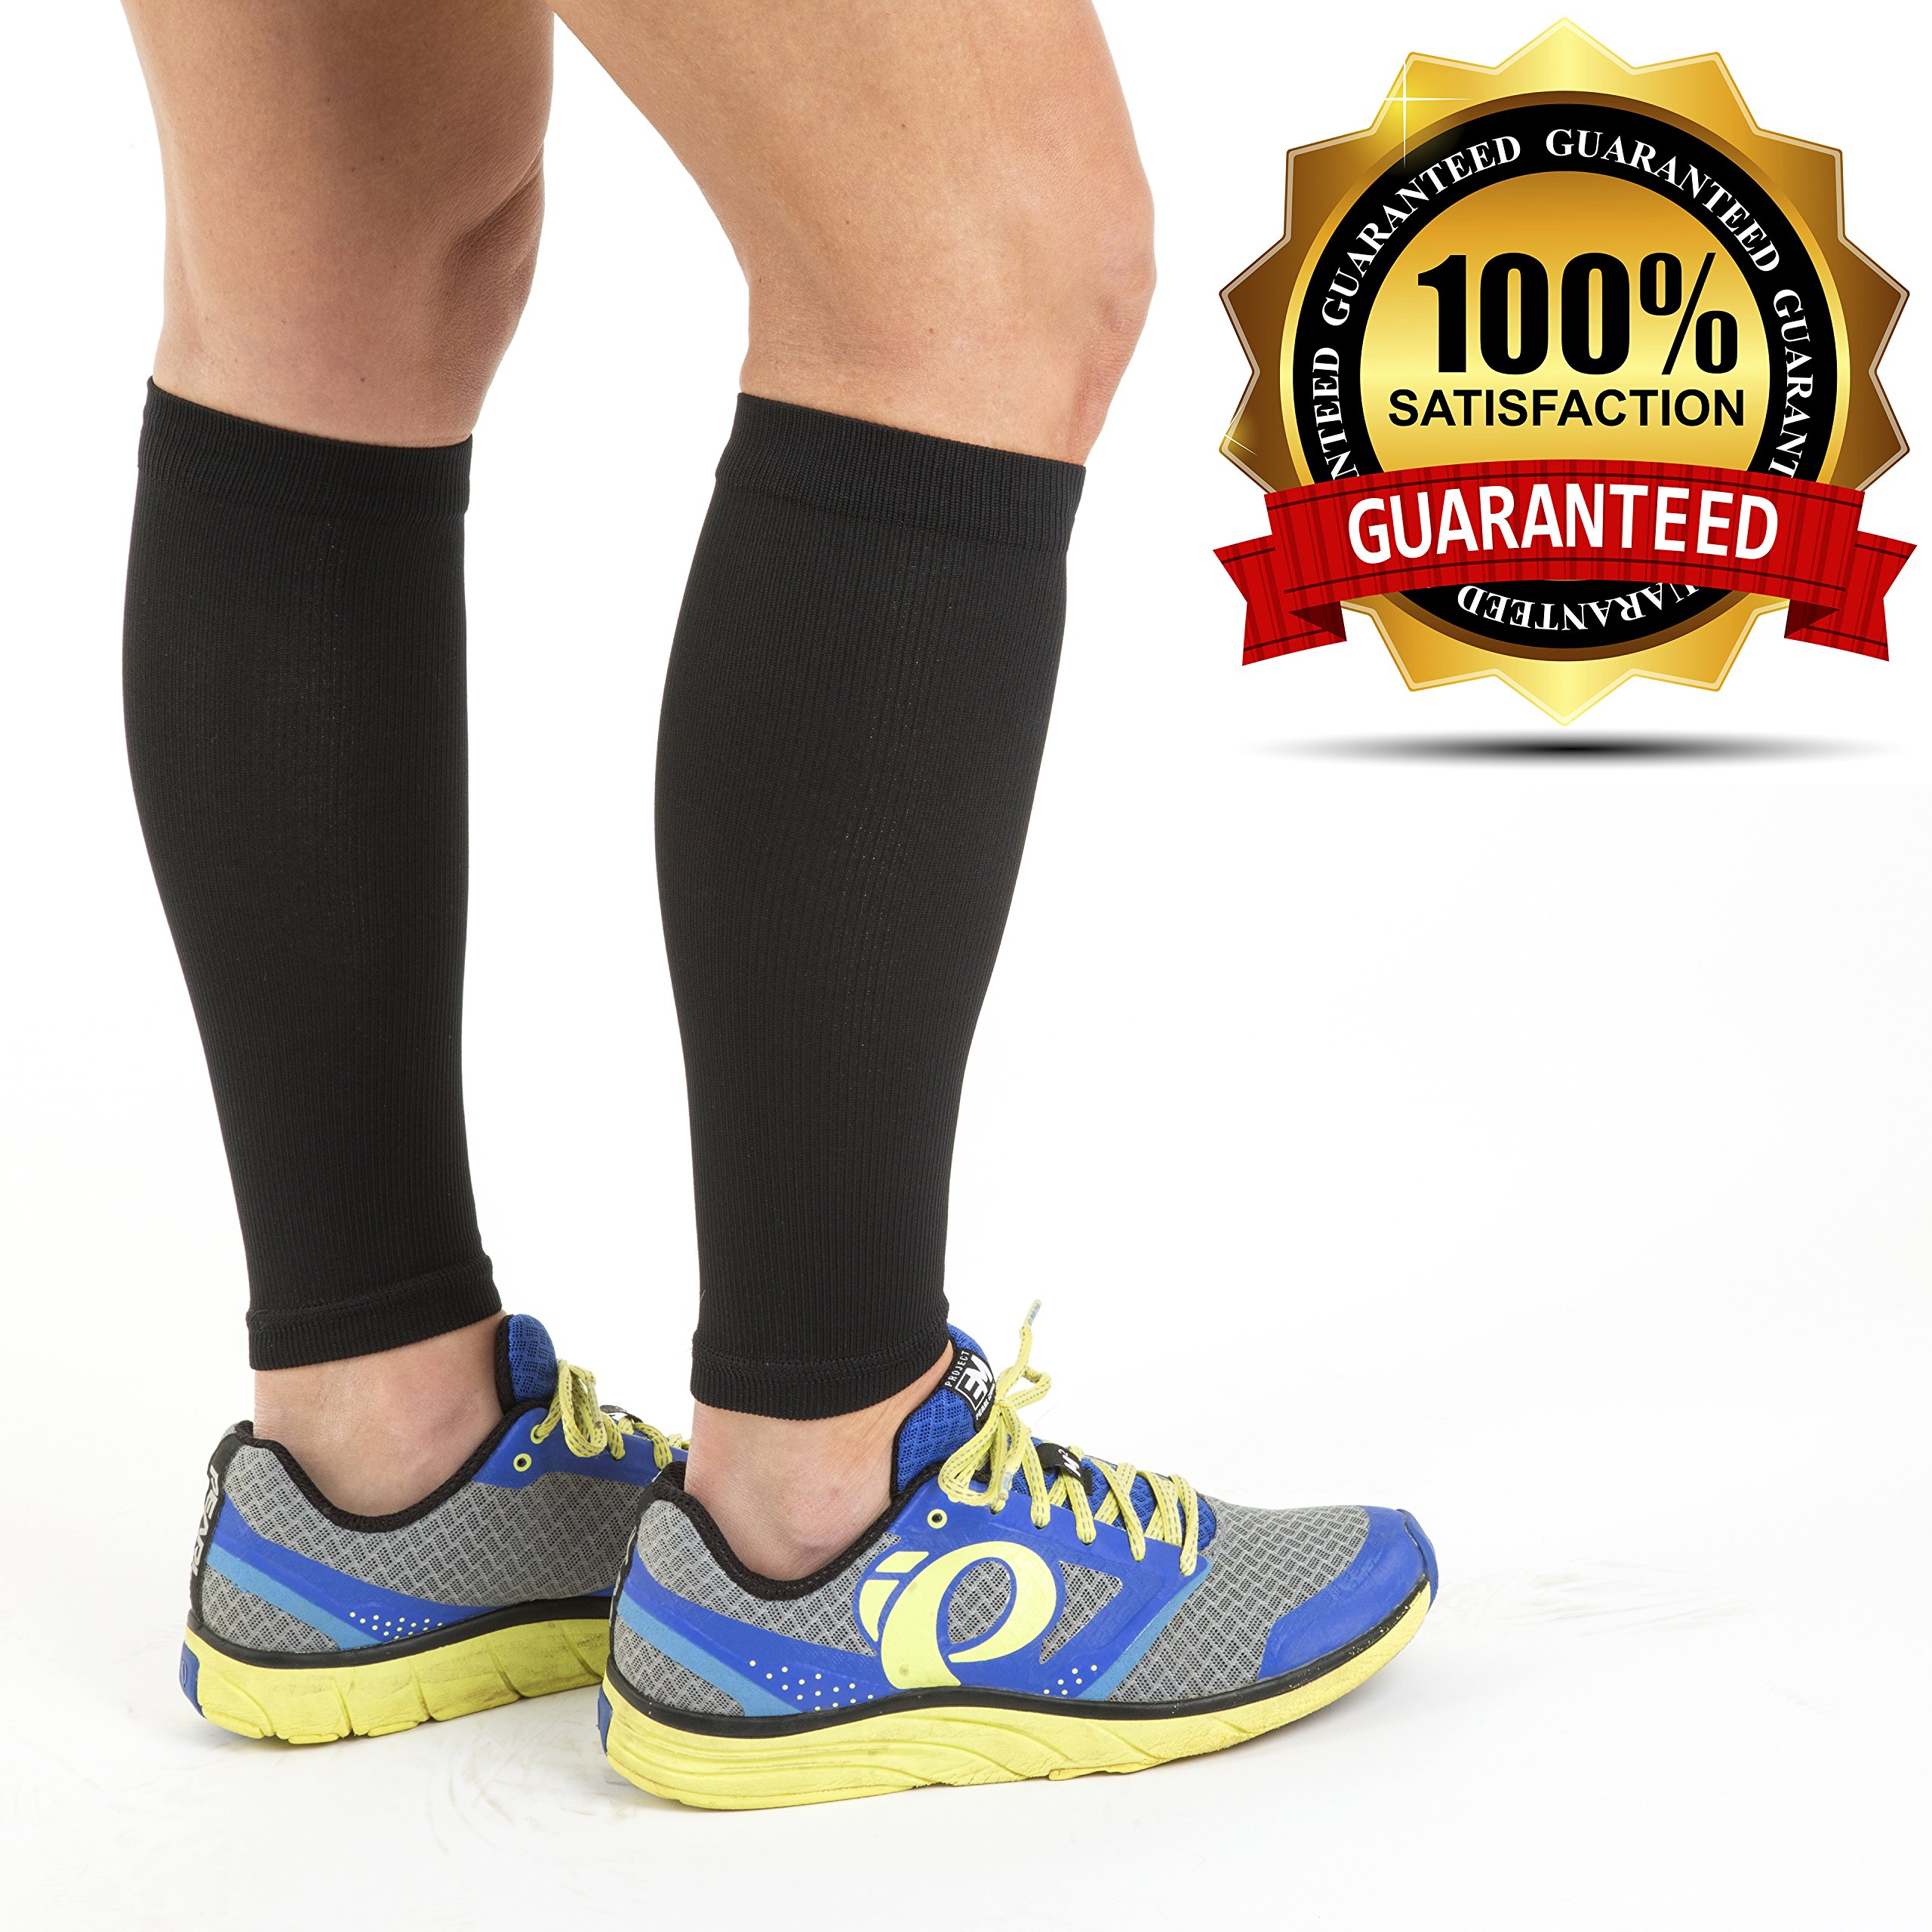 Calf Sleeve (1 pair) - Best True Graduated Compression Leg Sleeves For Running, Basketball - Boost Circulation - Faster Recovery for Runners - Aid Shin Splints & Strains. by Active Life